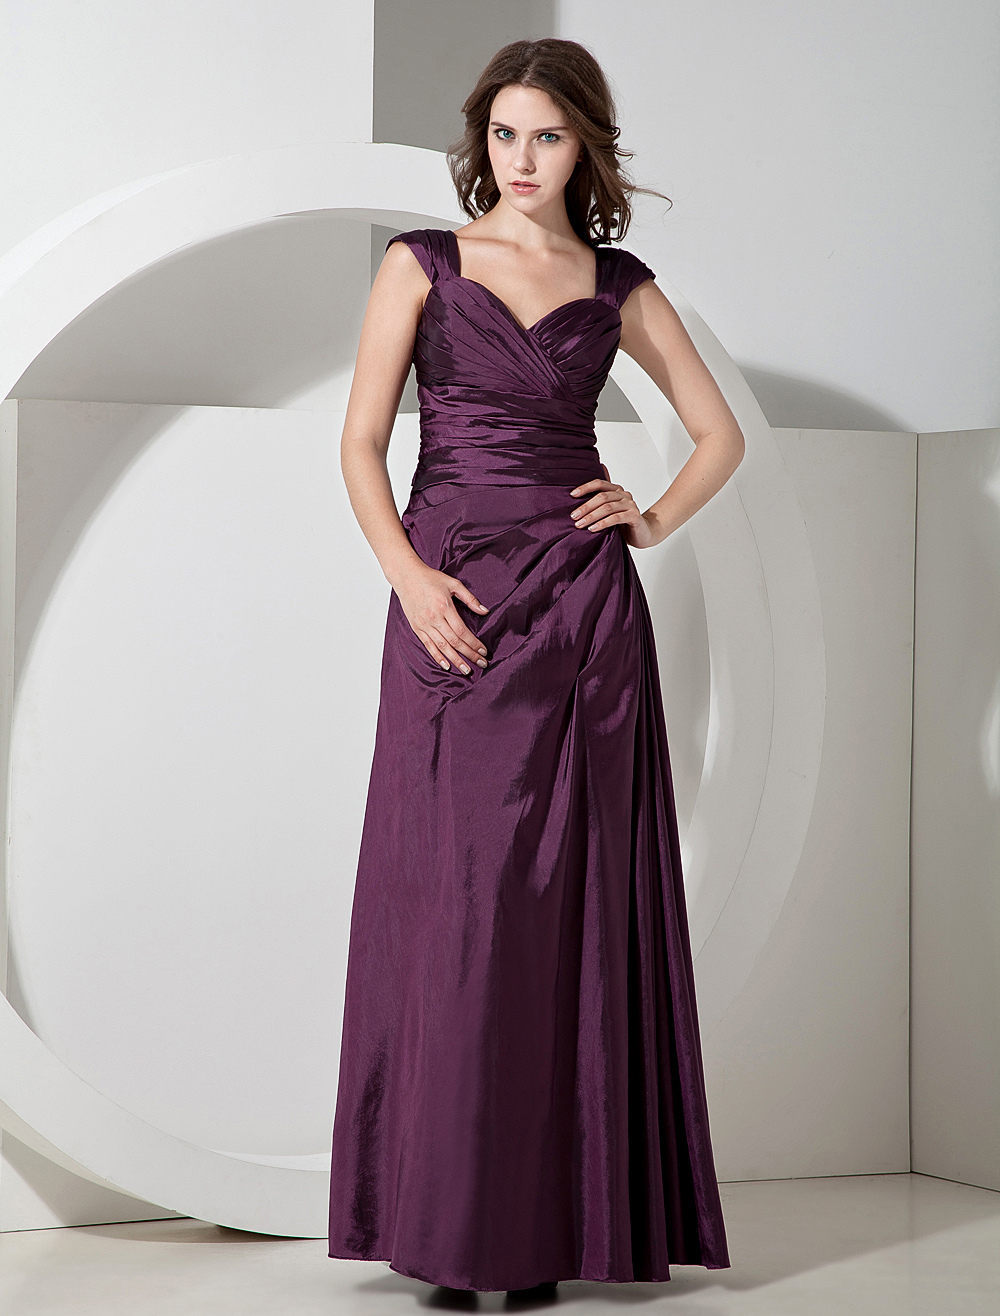 Grape Taffeta Floor Length Sweetheart Bridesmaid Dress